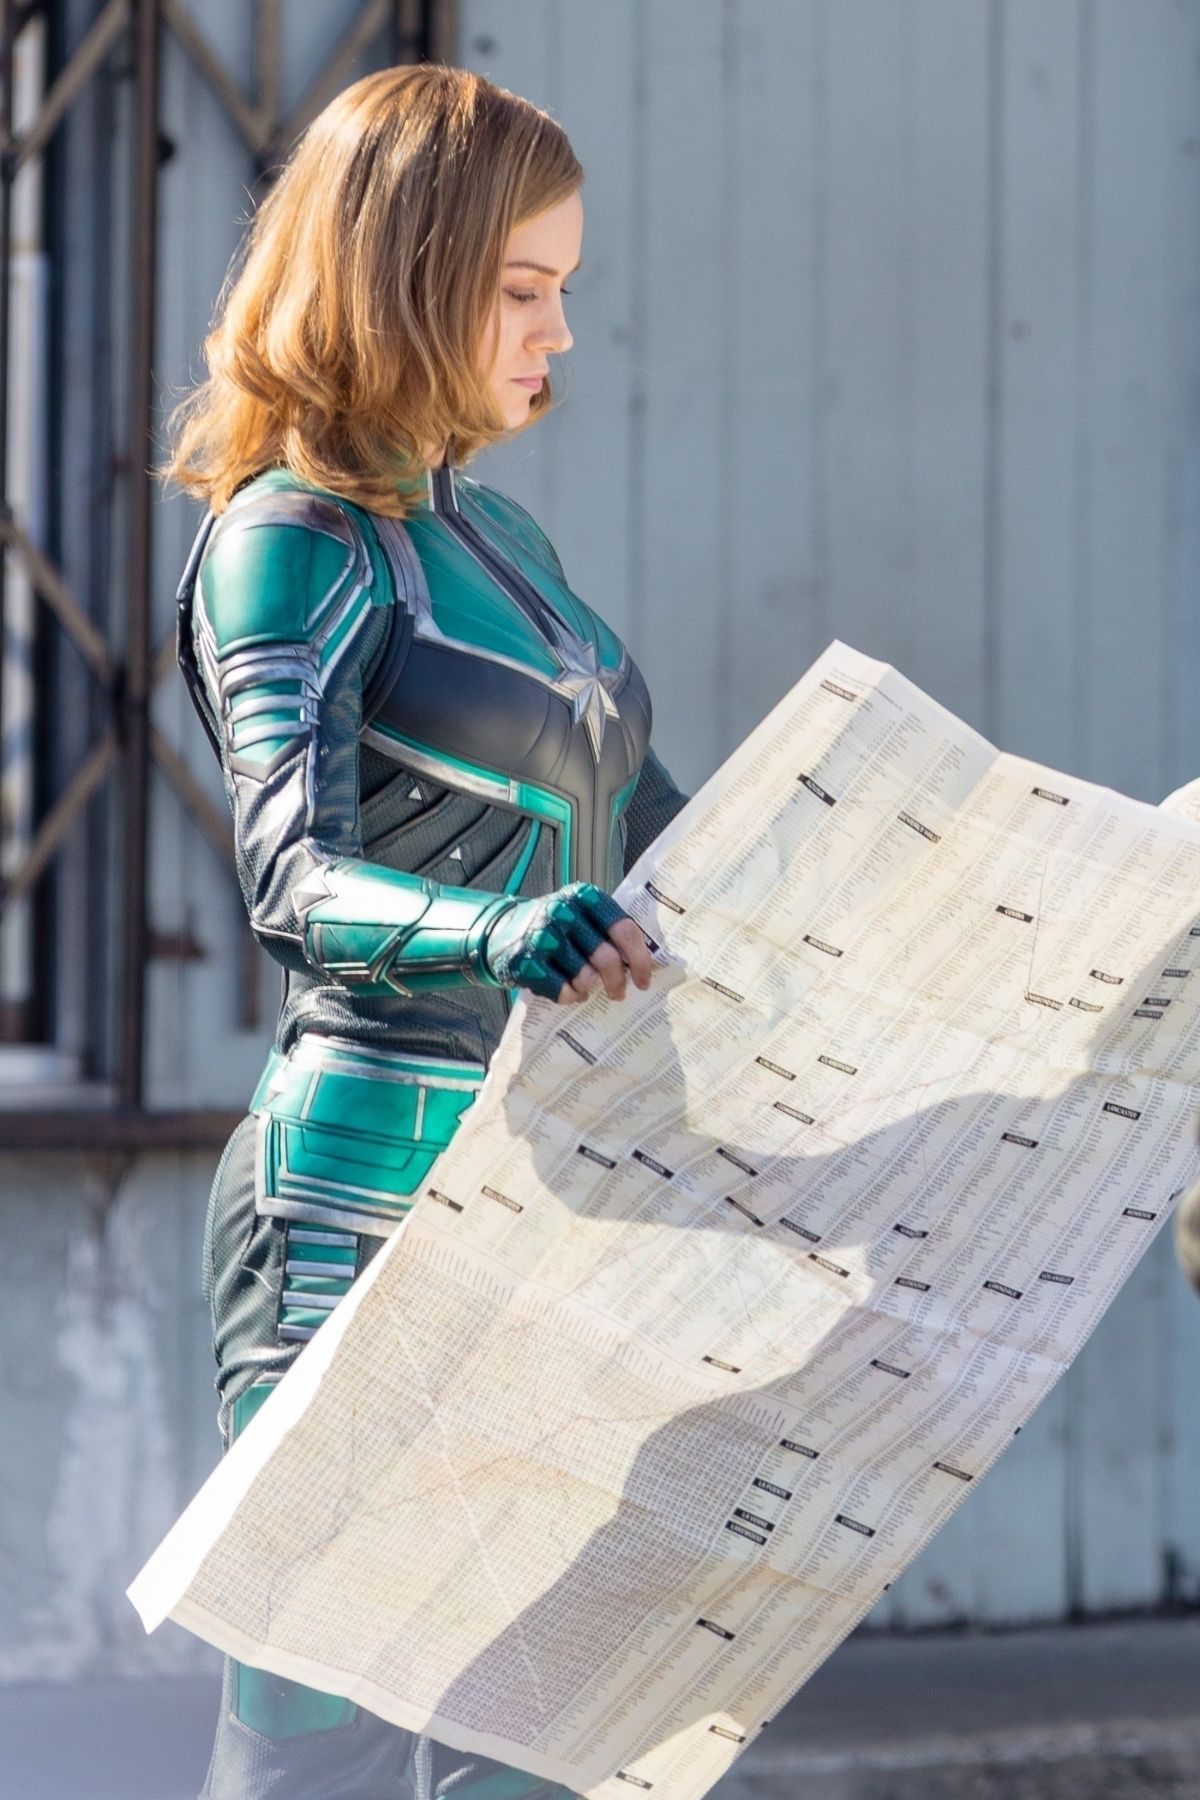 brie-larson-on-the-set-of-captain-marvel